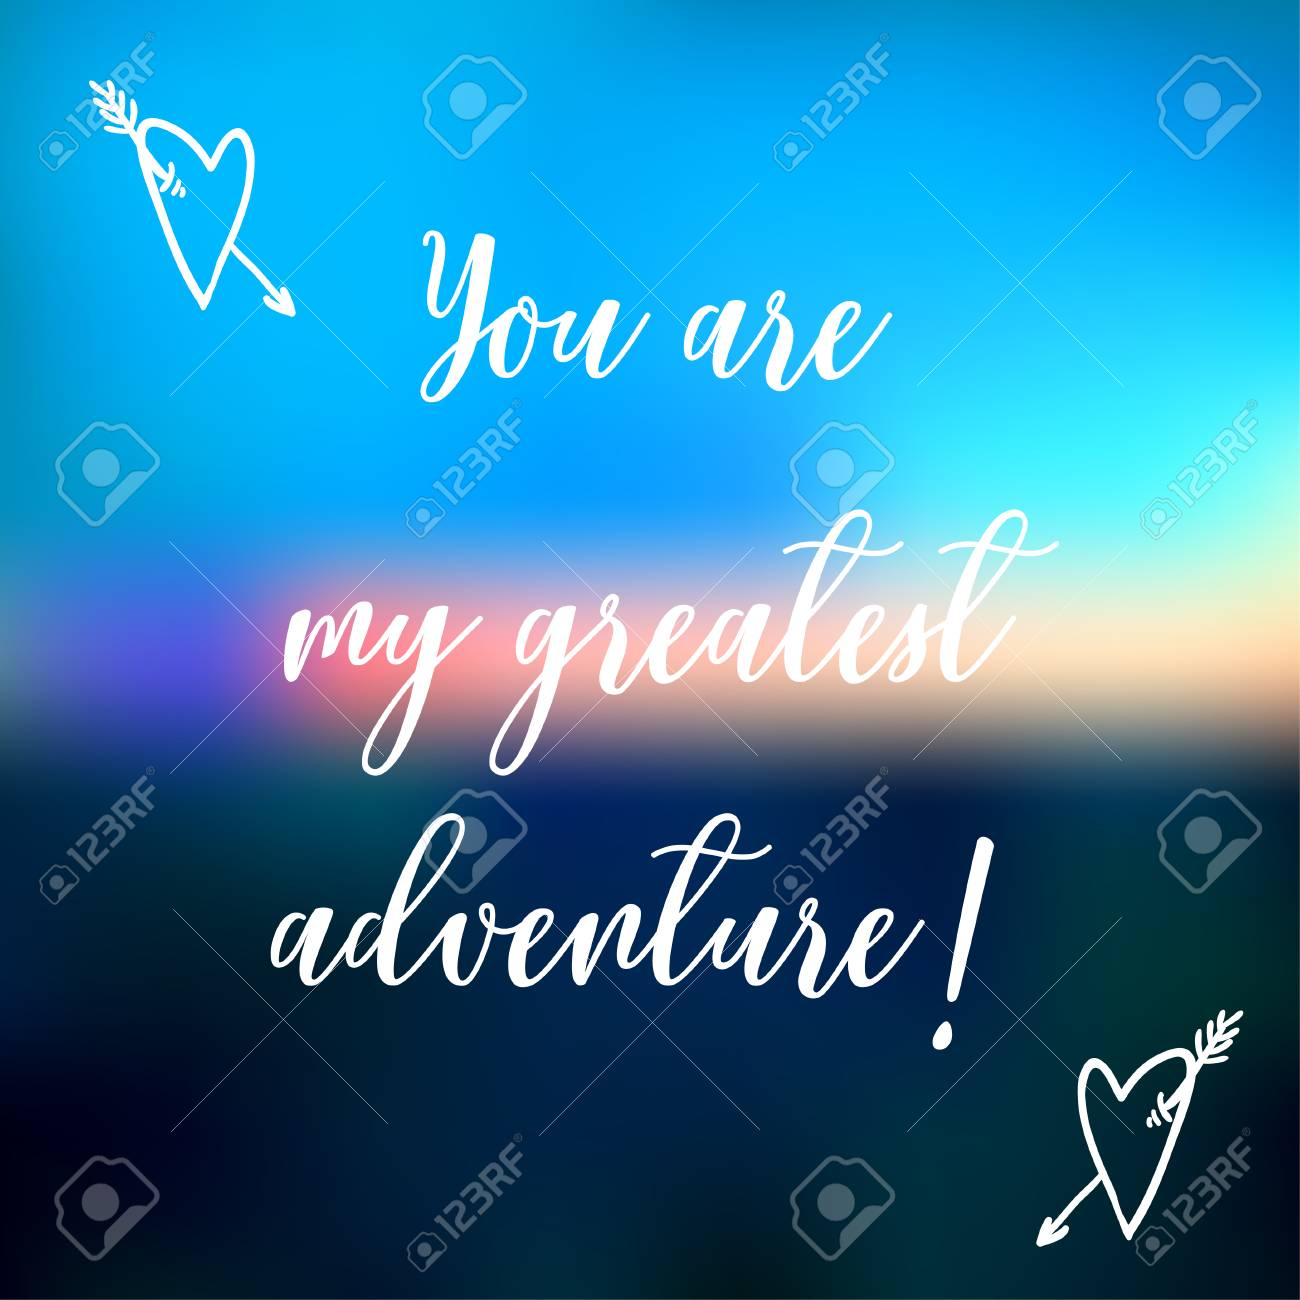 Decorative Card With Quote You Are My Greatest Adventure Royalty